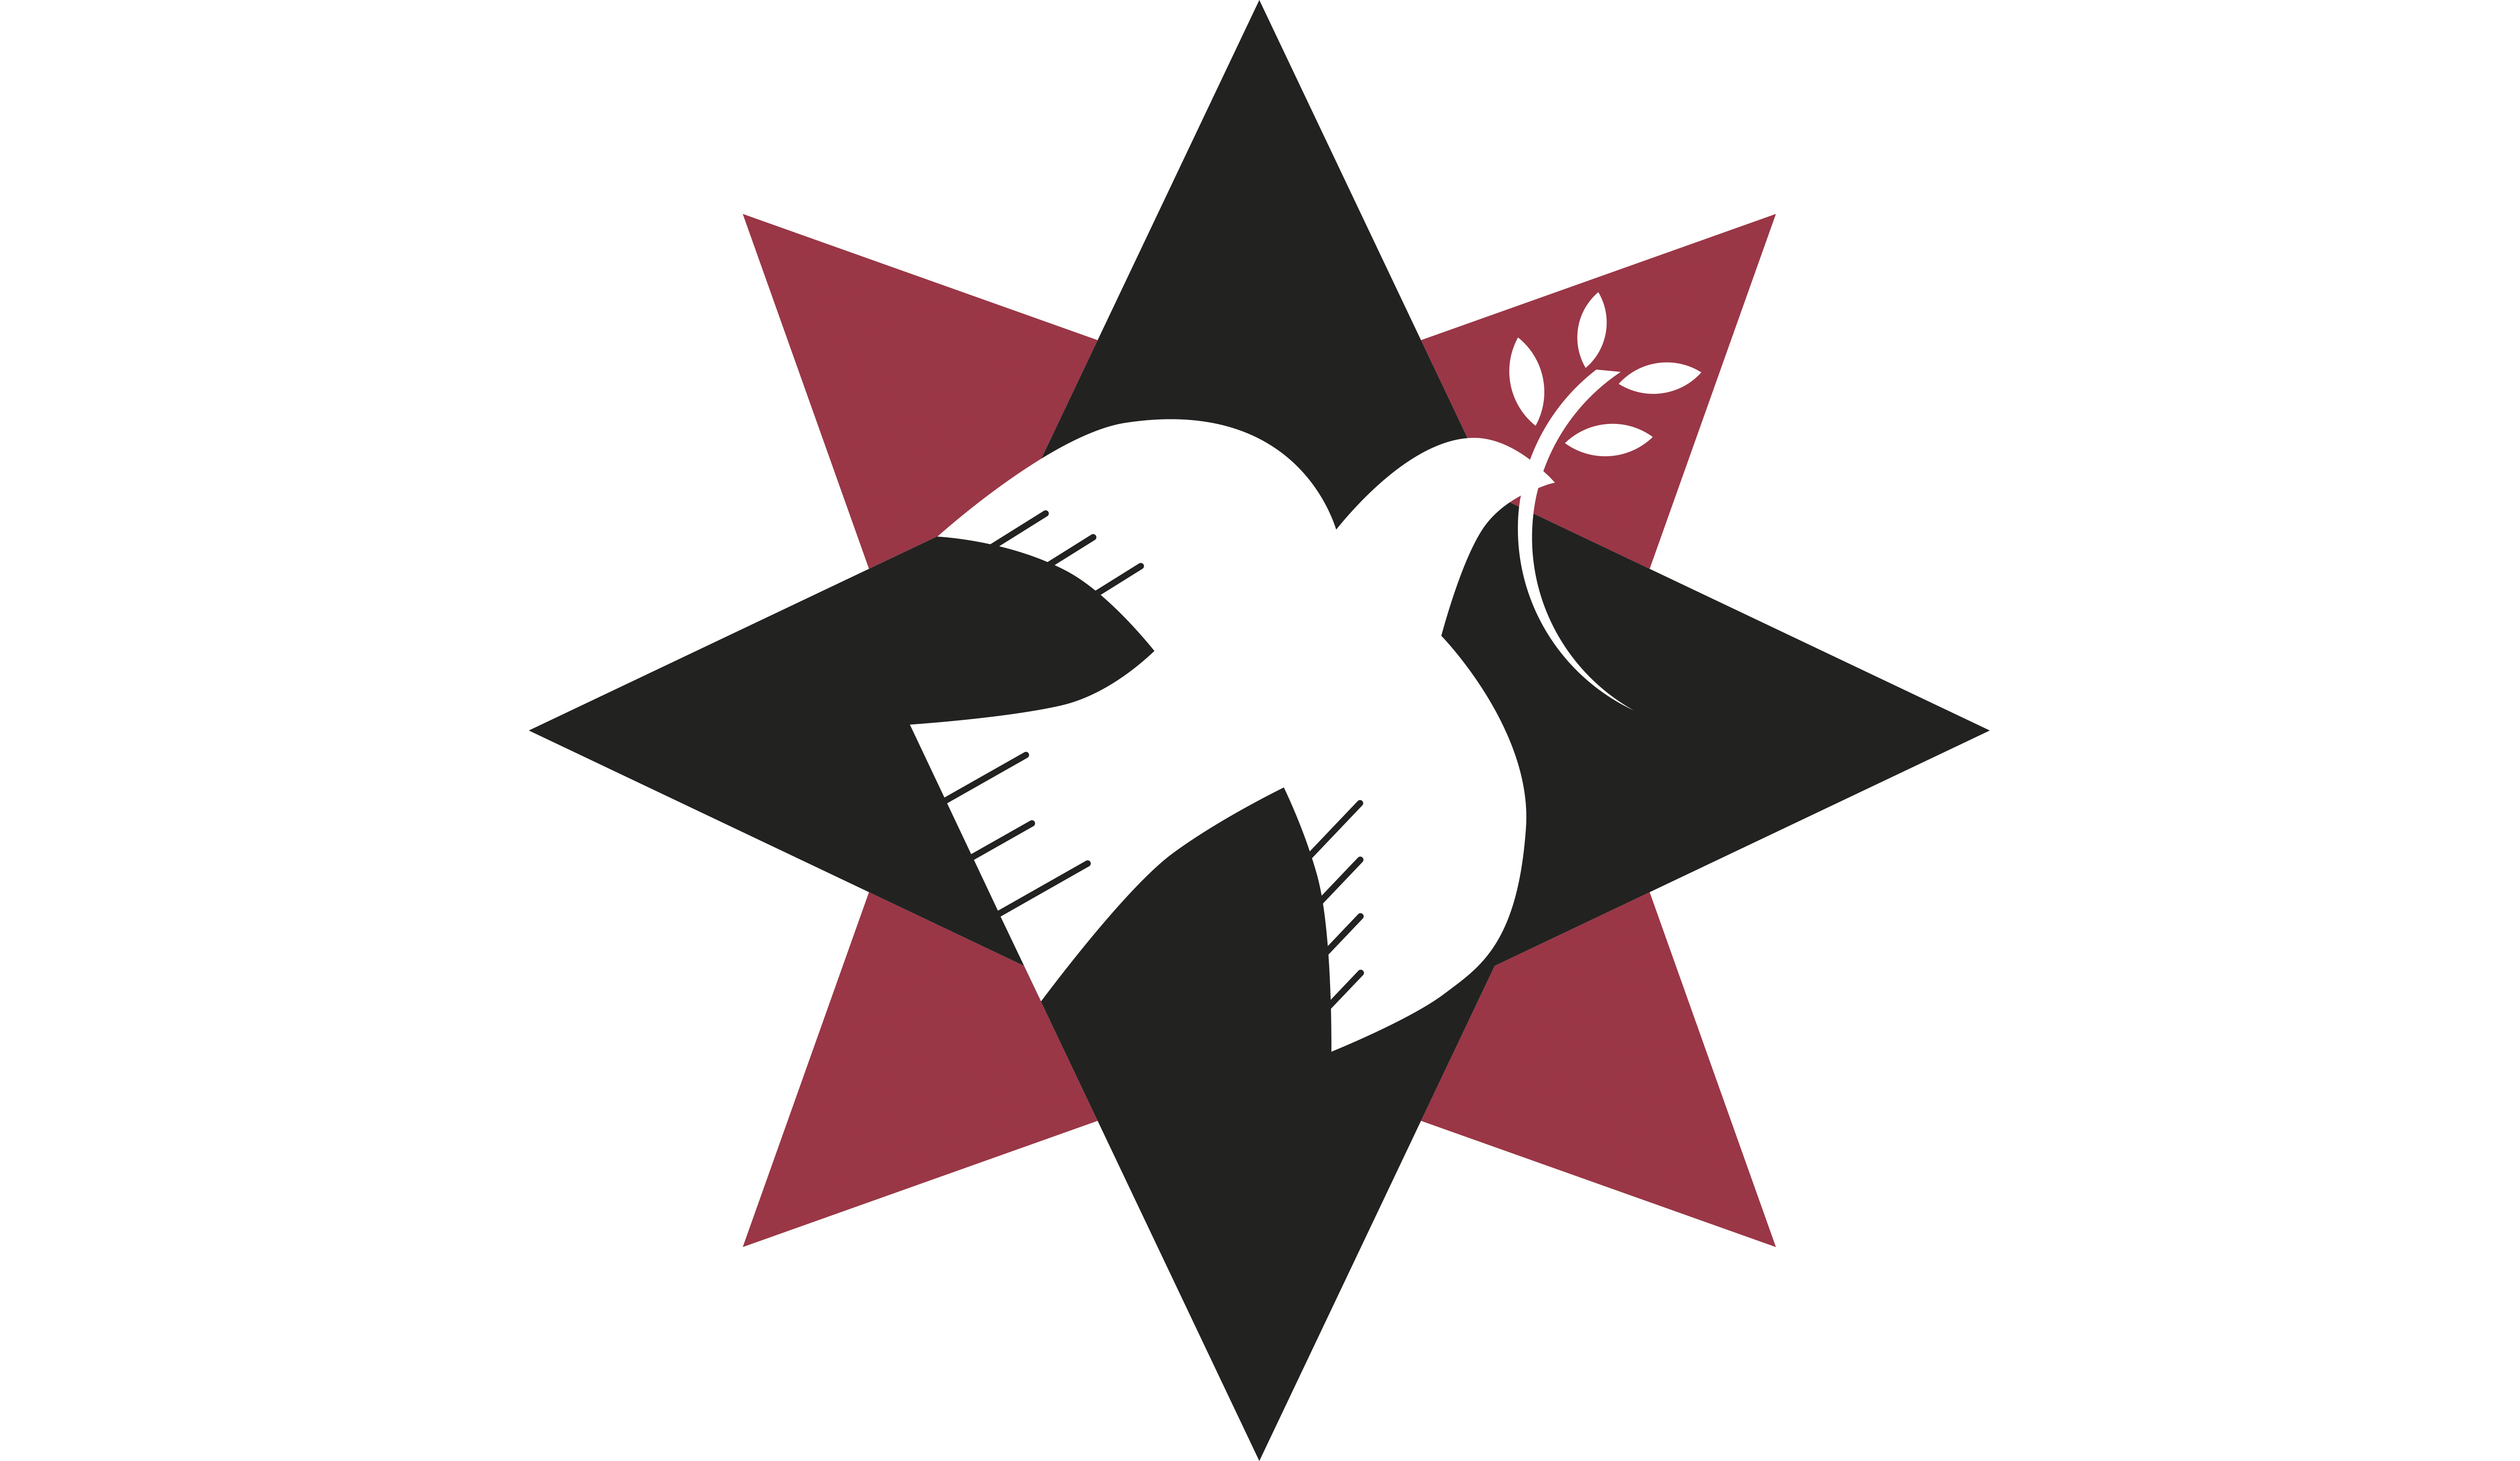 Quaker Peace & Social Witness logo: 8-point star with a dove